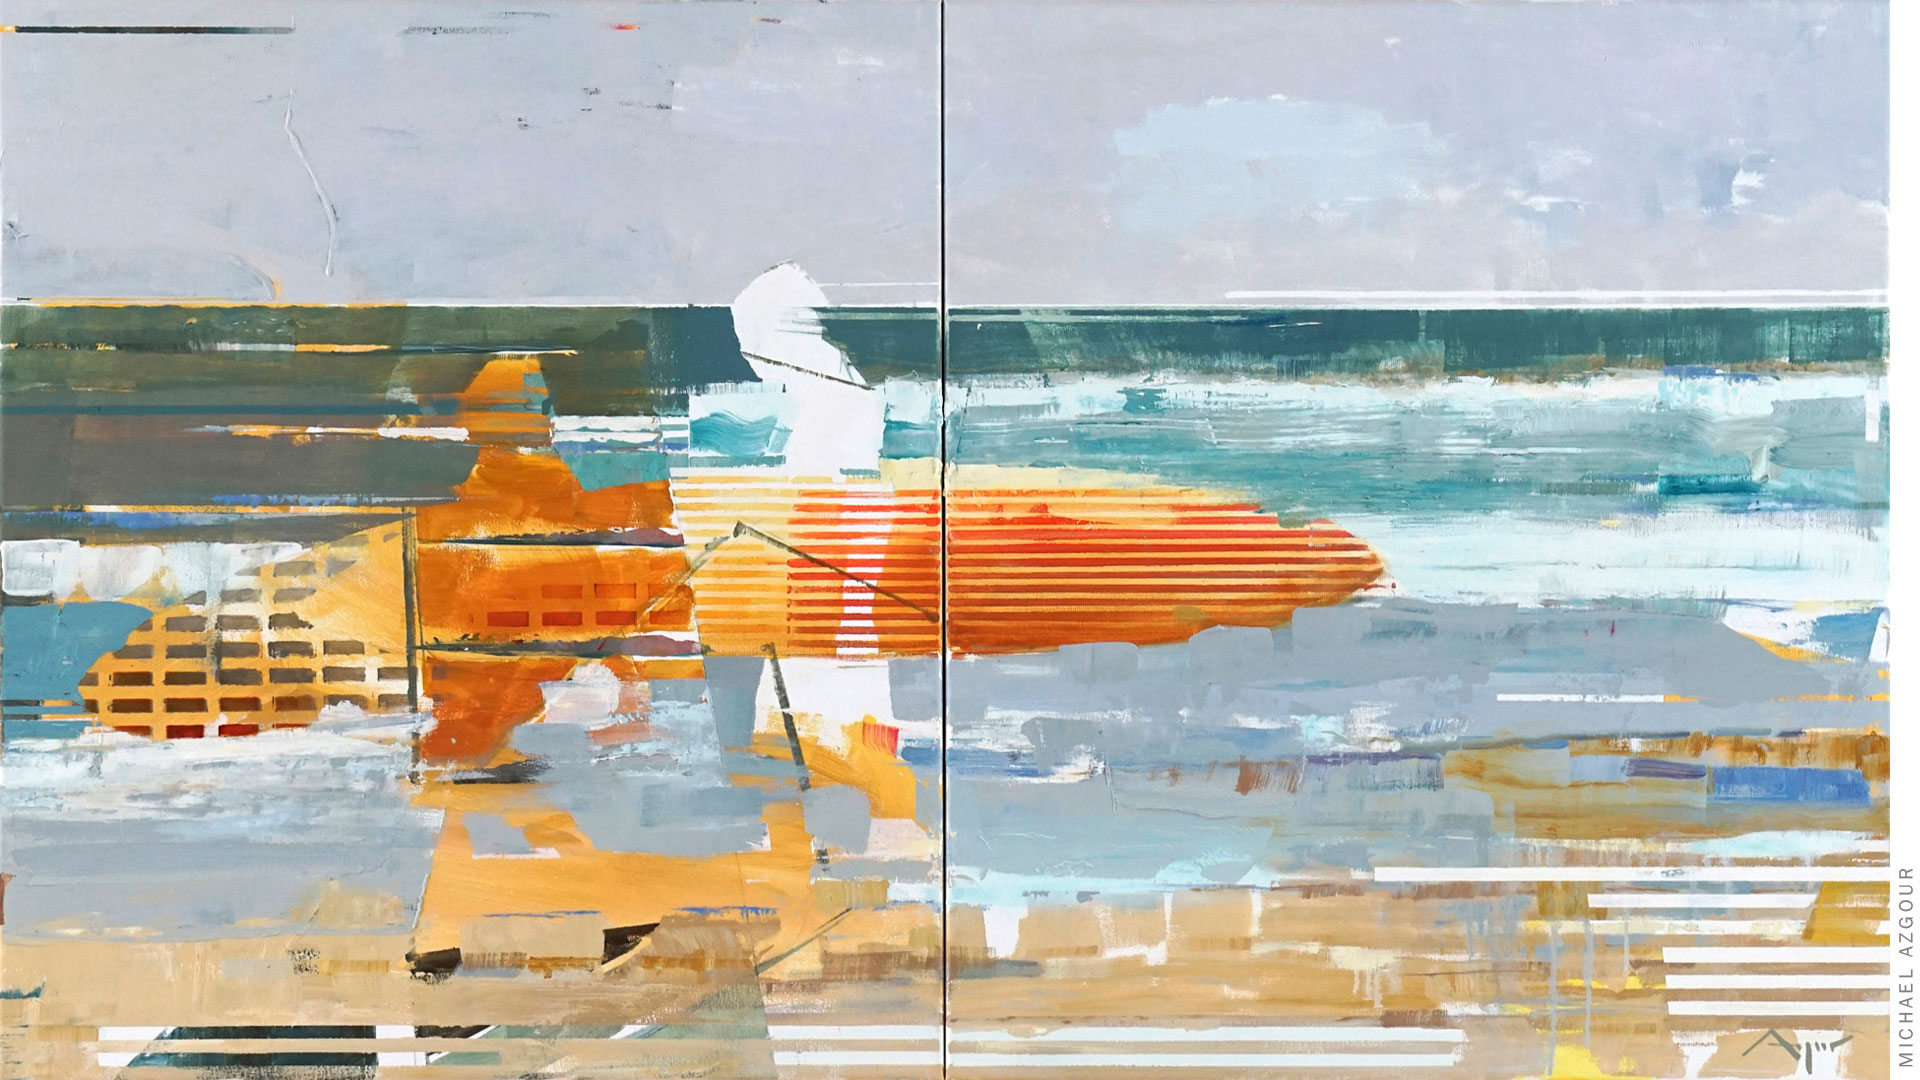 Two Surfers, 2018, Abstract figurative painting by artist, Michael Azgour depicting two abstracted surfers on the California coast